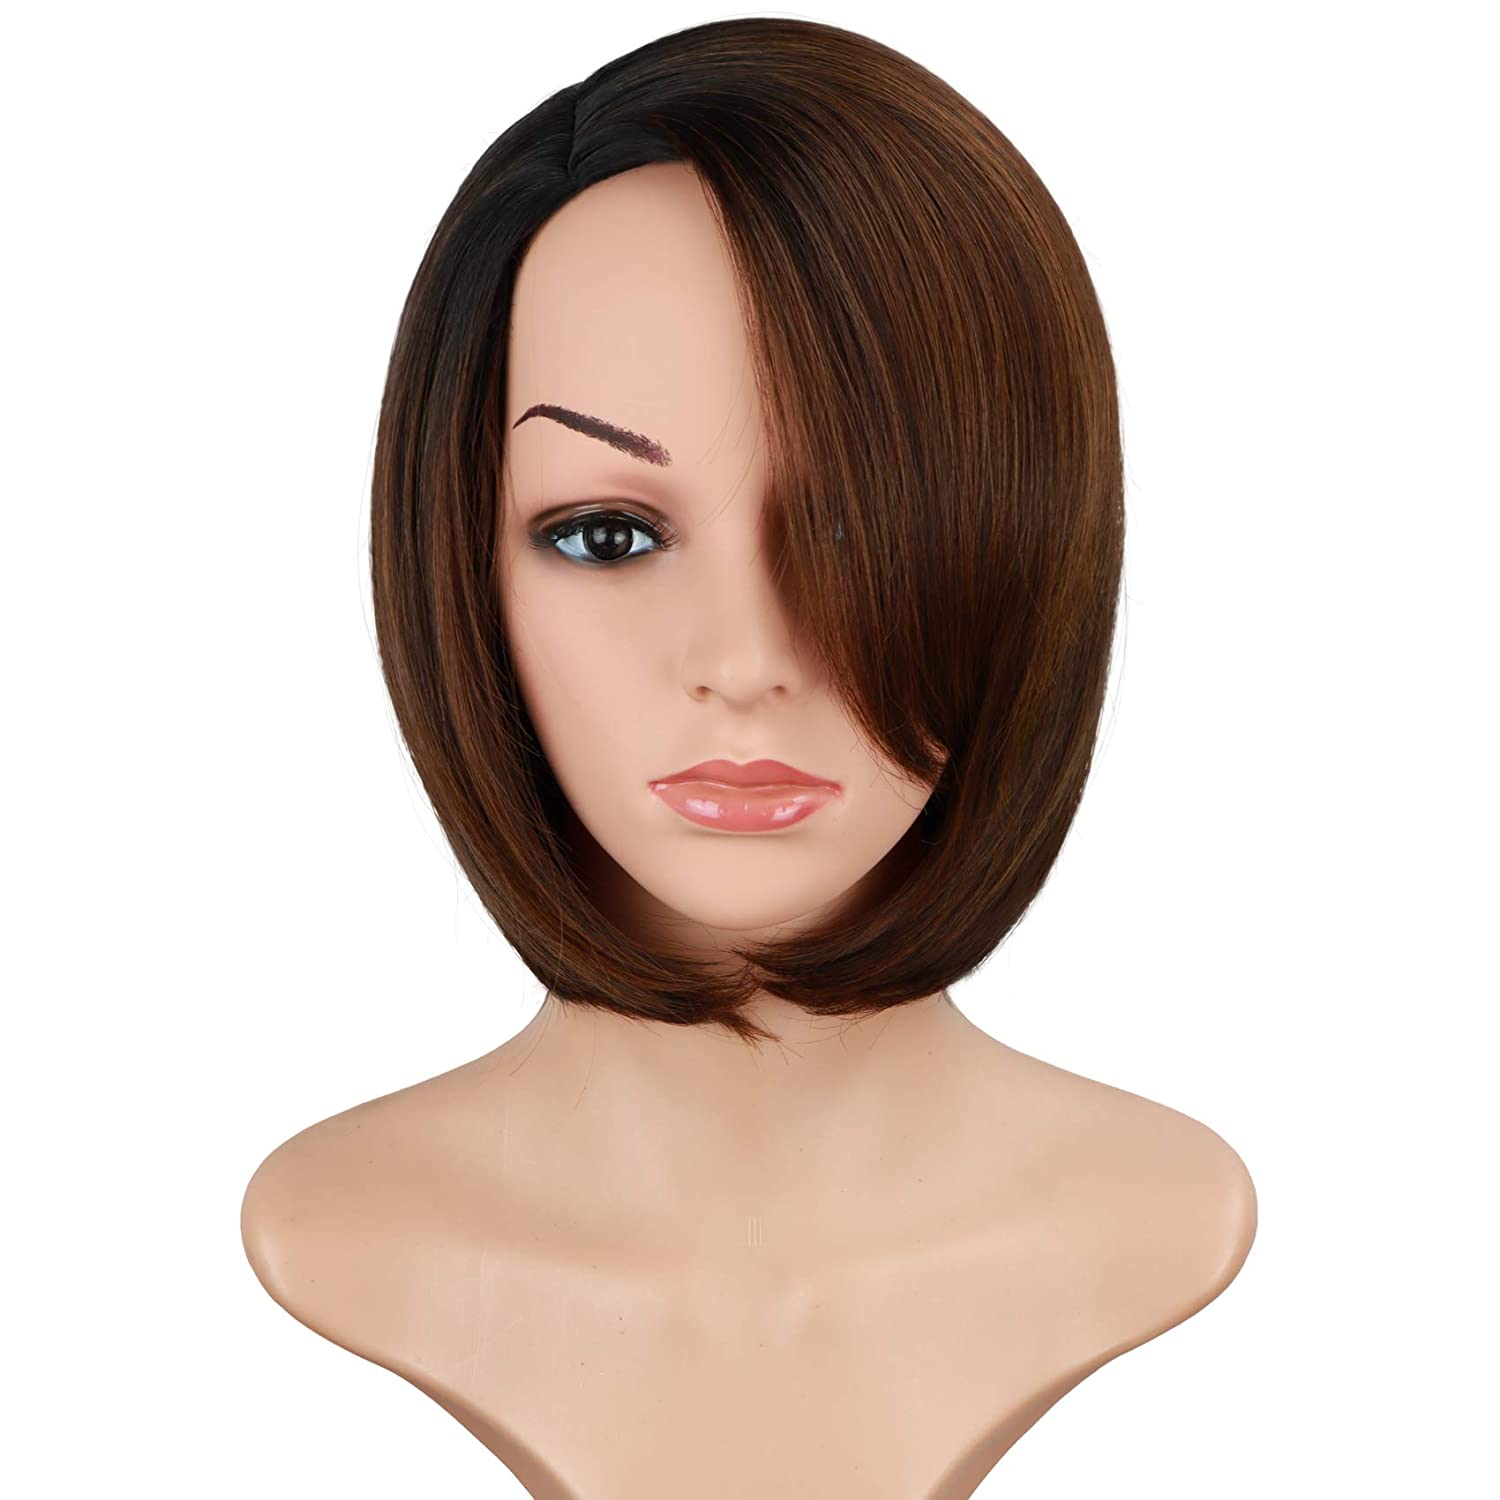 Ombre Brown Bob Wigs With Bangs For Black Women Side Part Bob Wigs With Side Bangs Synthetic Brown Bob Wigs Short Straight Bob Wigs 12 Inch (Ombre Brown)